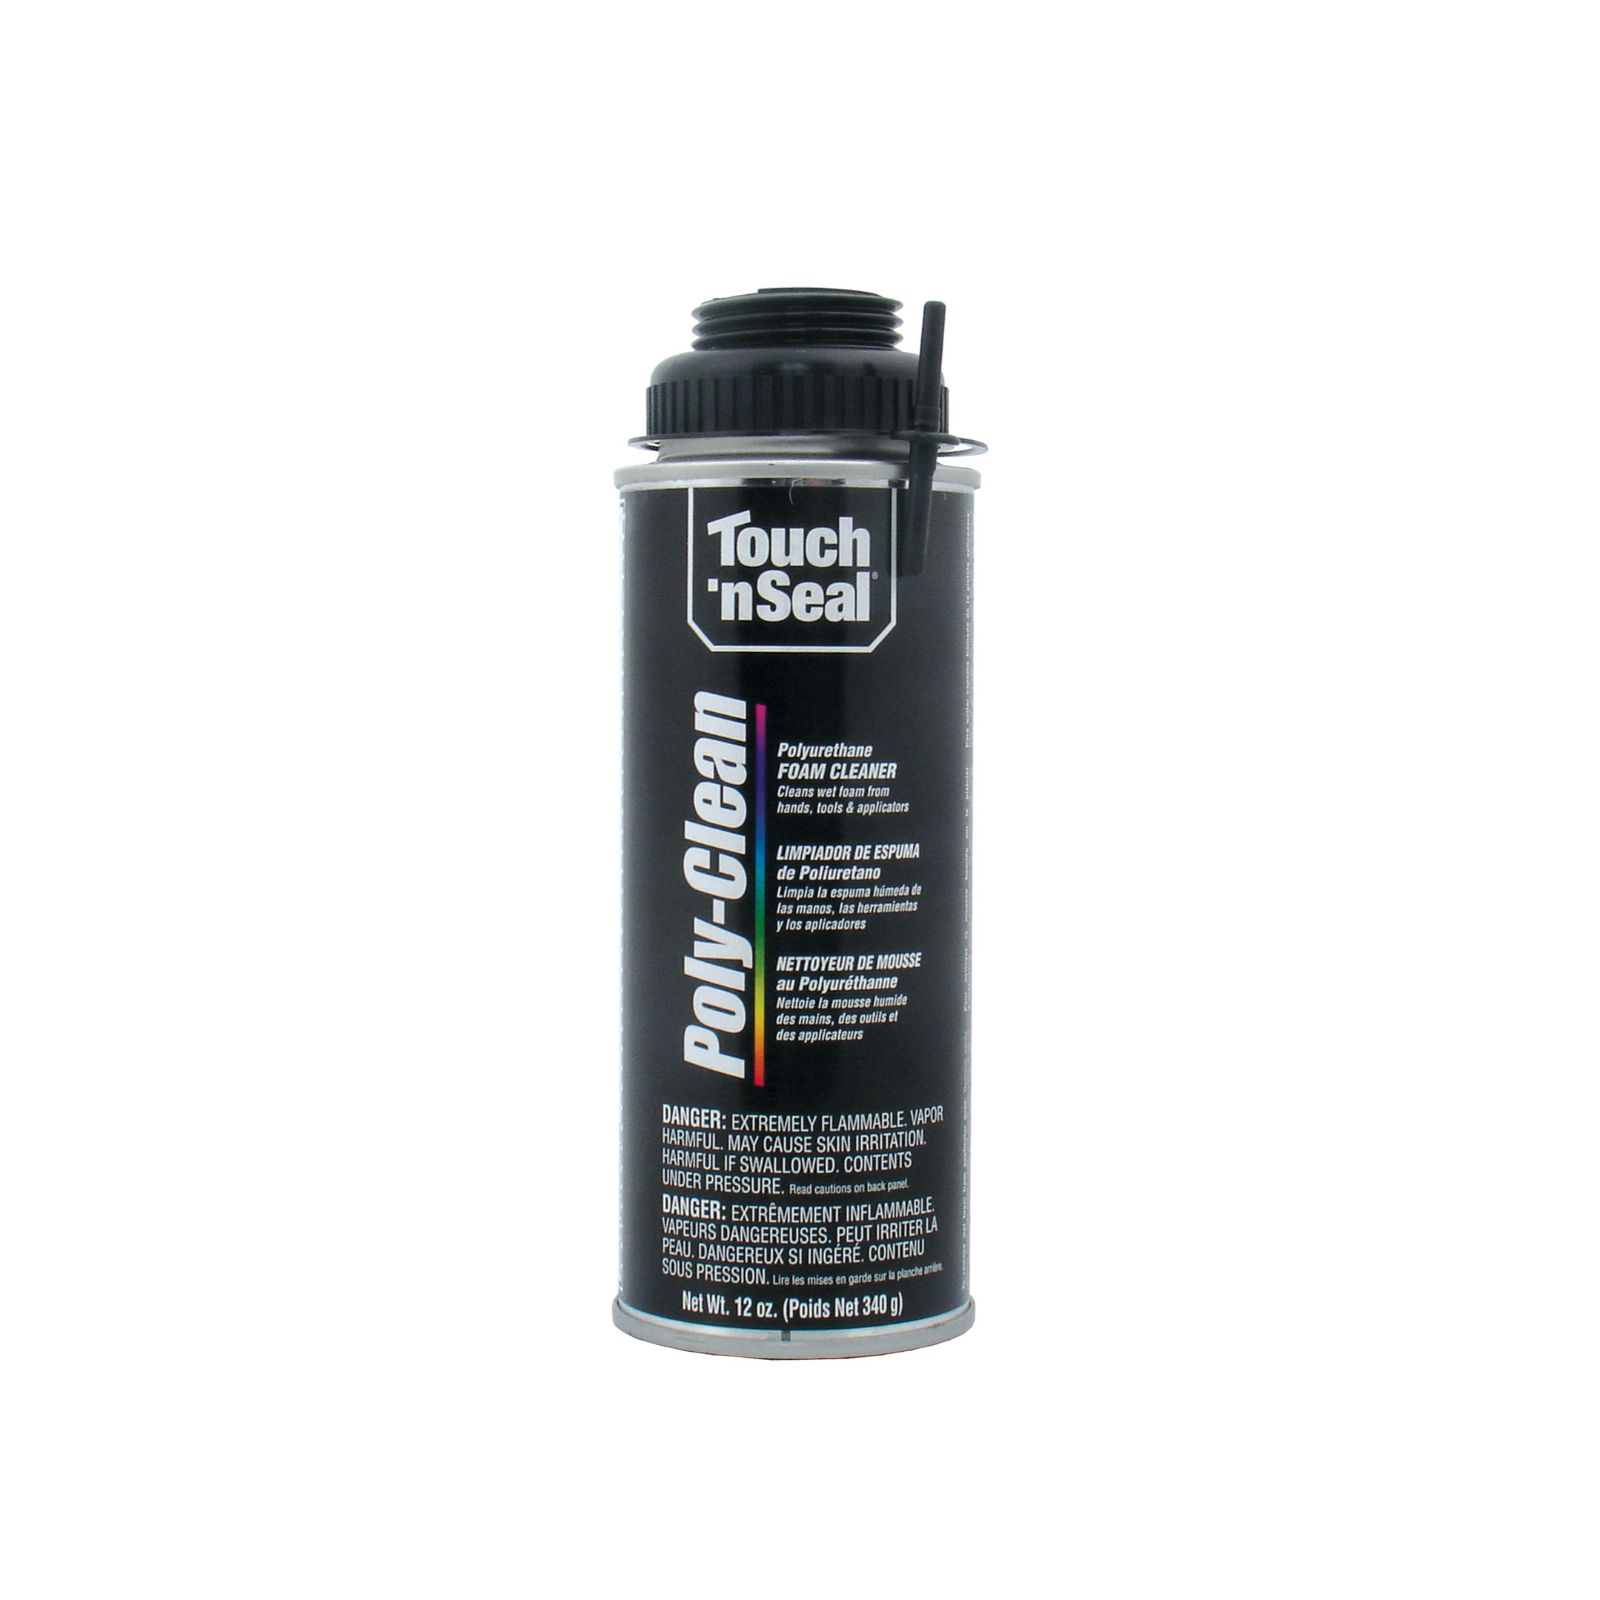 BWI Products 4004712022 - Touch 'n Seal Poly-Clean Polyurethane Foam Cleaner (12 oz. can)